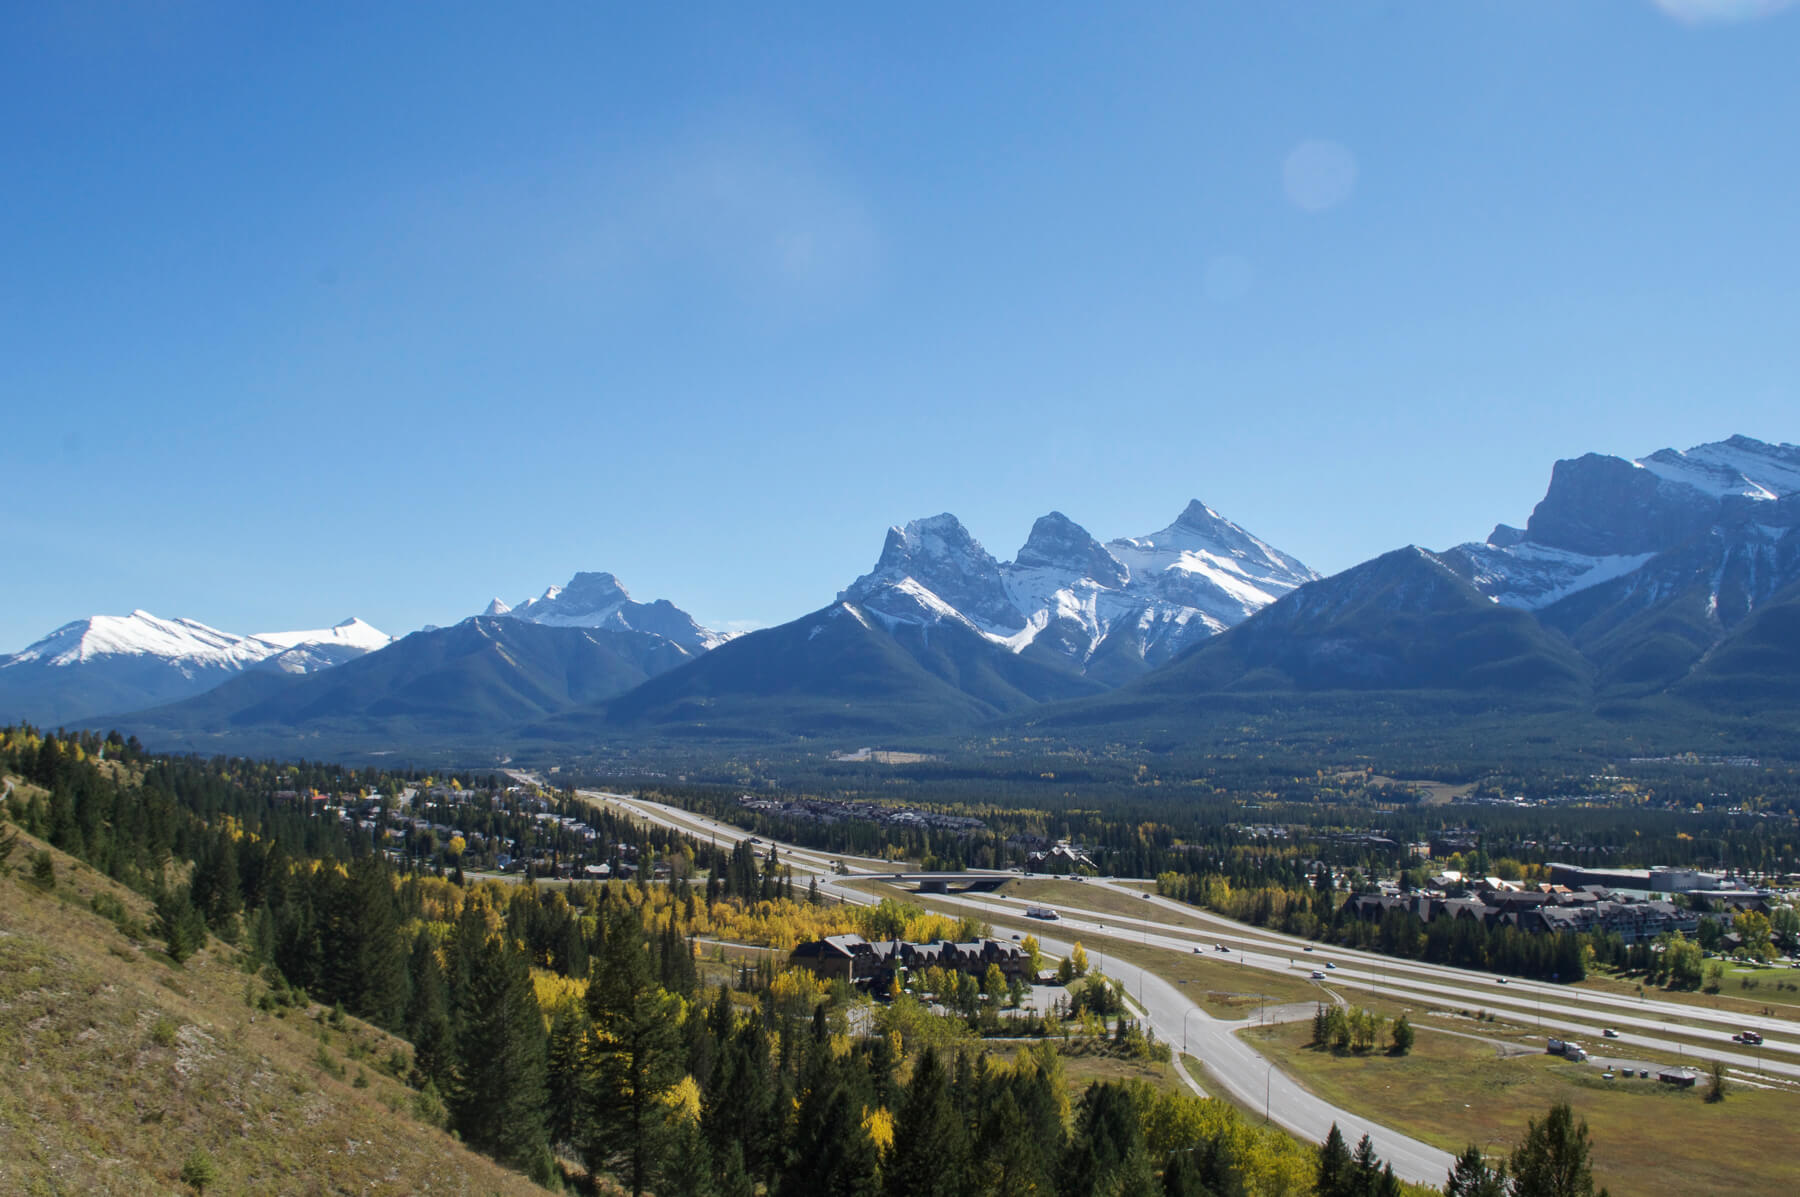 The 'Three Sisters' Peak and rocky mountains in Canmore, Alberta